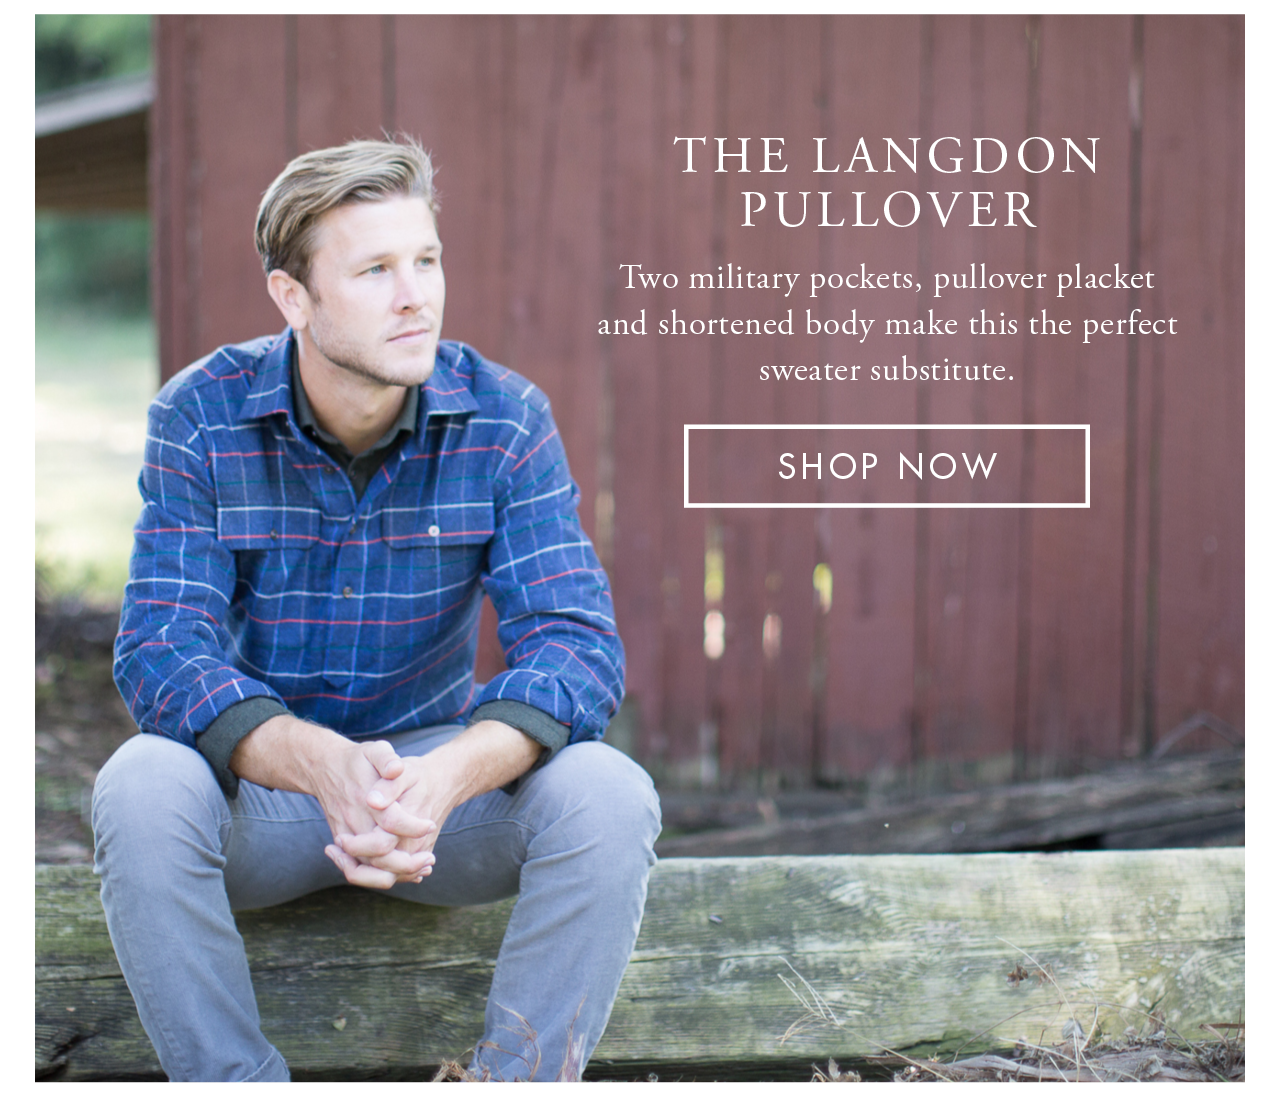 The Langdon Pullover